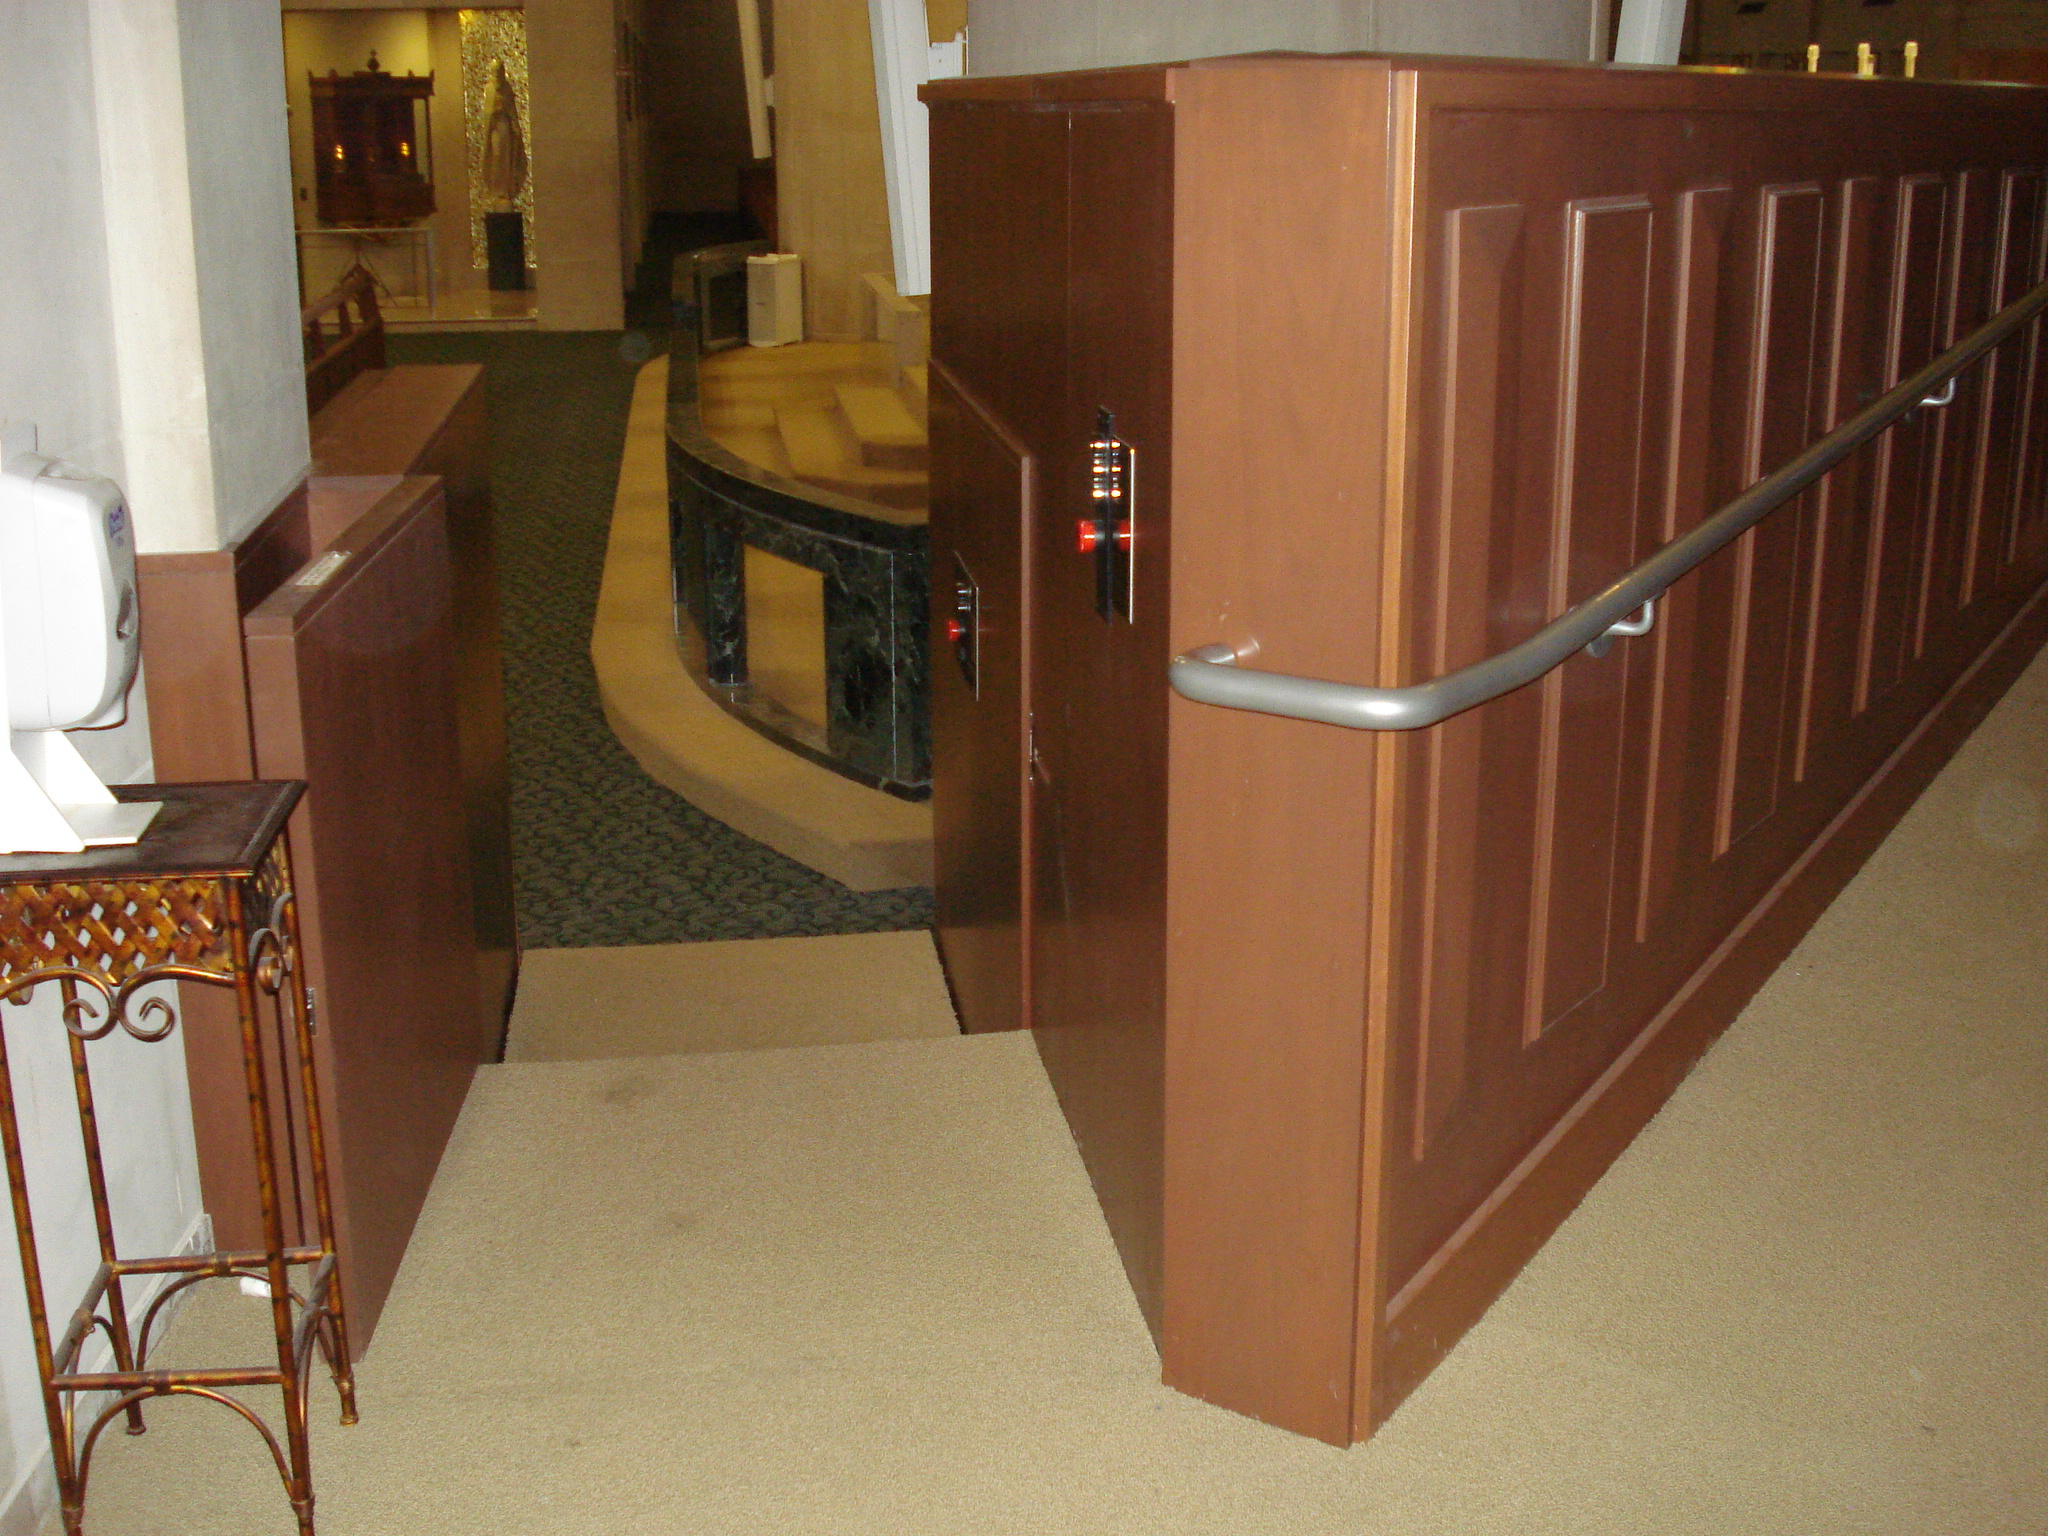 Both doors are opened, view from upper level. Lift in church utilizes retractable step to allow ambulatory access to an from the chancel. Lift encased in wood millwork blending in with surrounding aesthetics. Lift function readily available, independently operable.